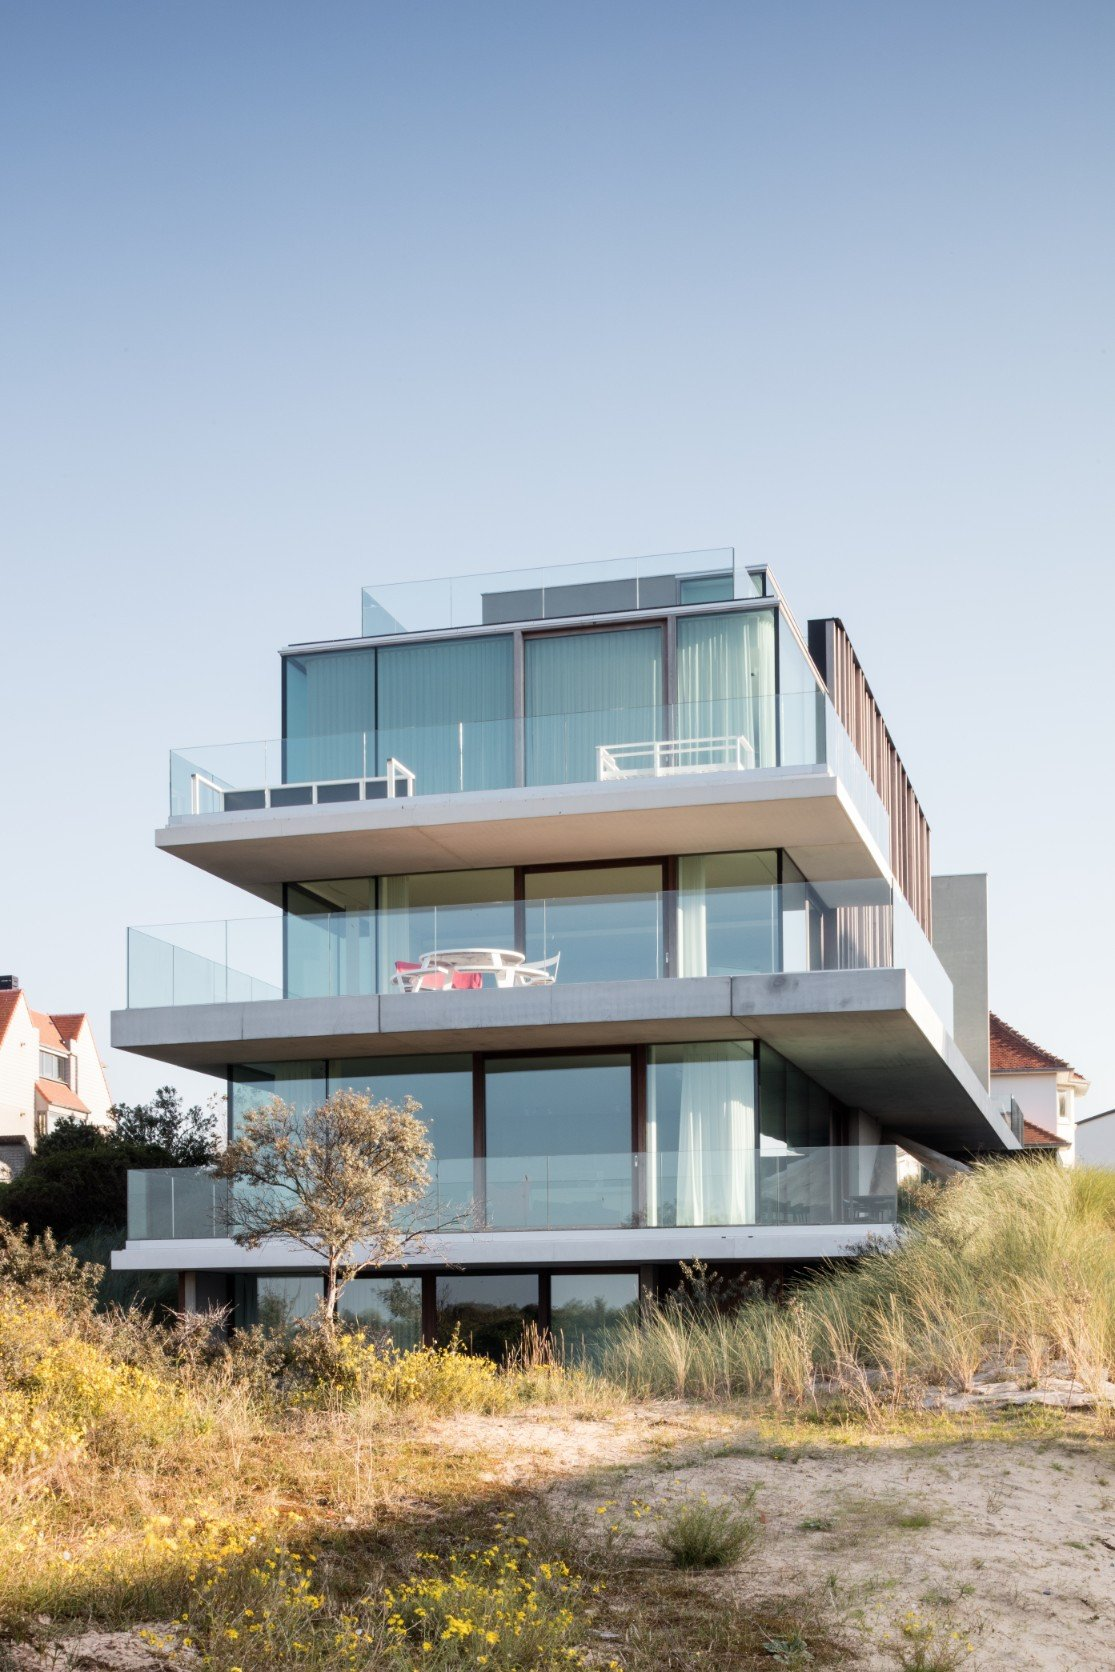 Rietveldprojects-Residence-ON-appartement-design-architectuur-kust-tvdv10